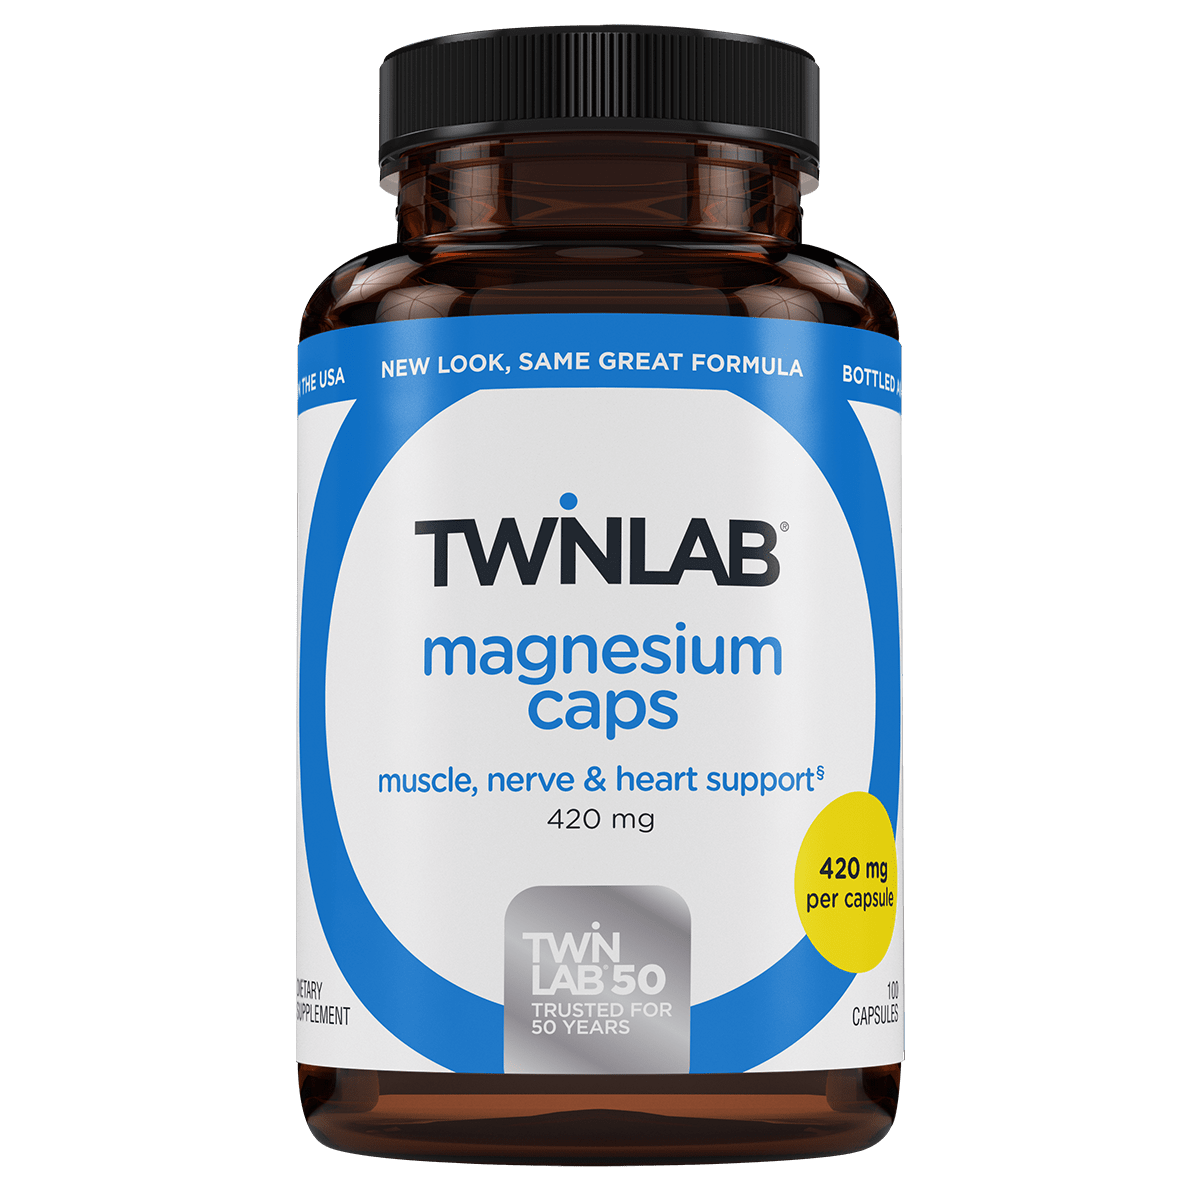 Take your daily dose of 420 mg magnesium with just one capsule of Twinlab® Magnesium Caps 100 Count